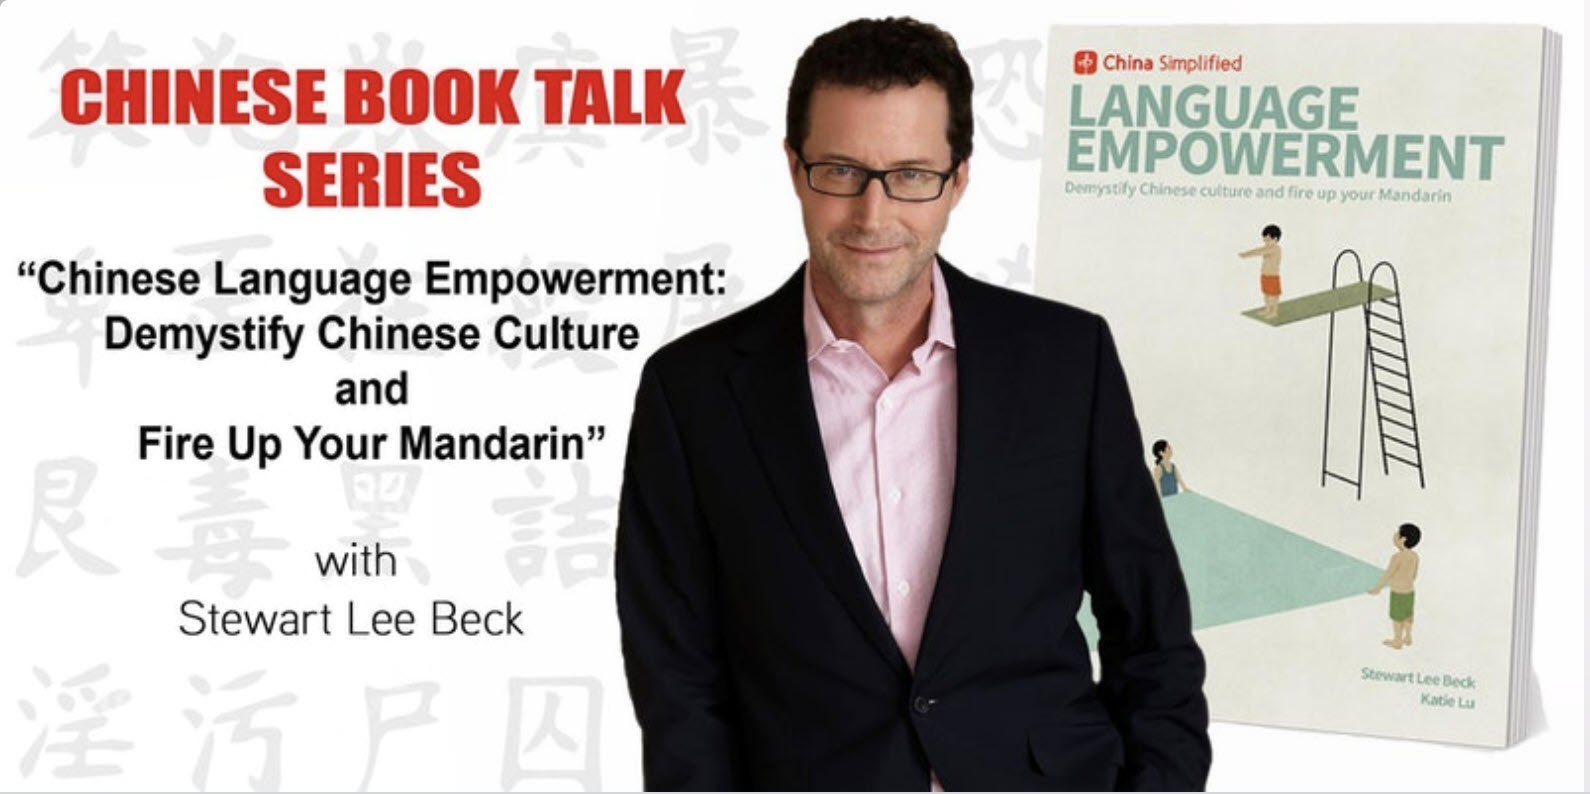 Chinese Book Talk